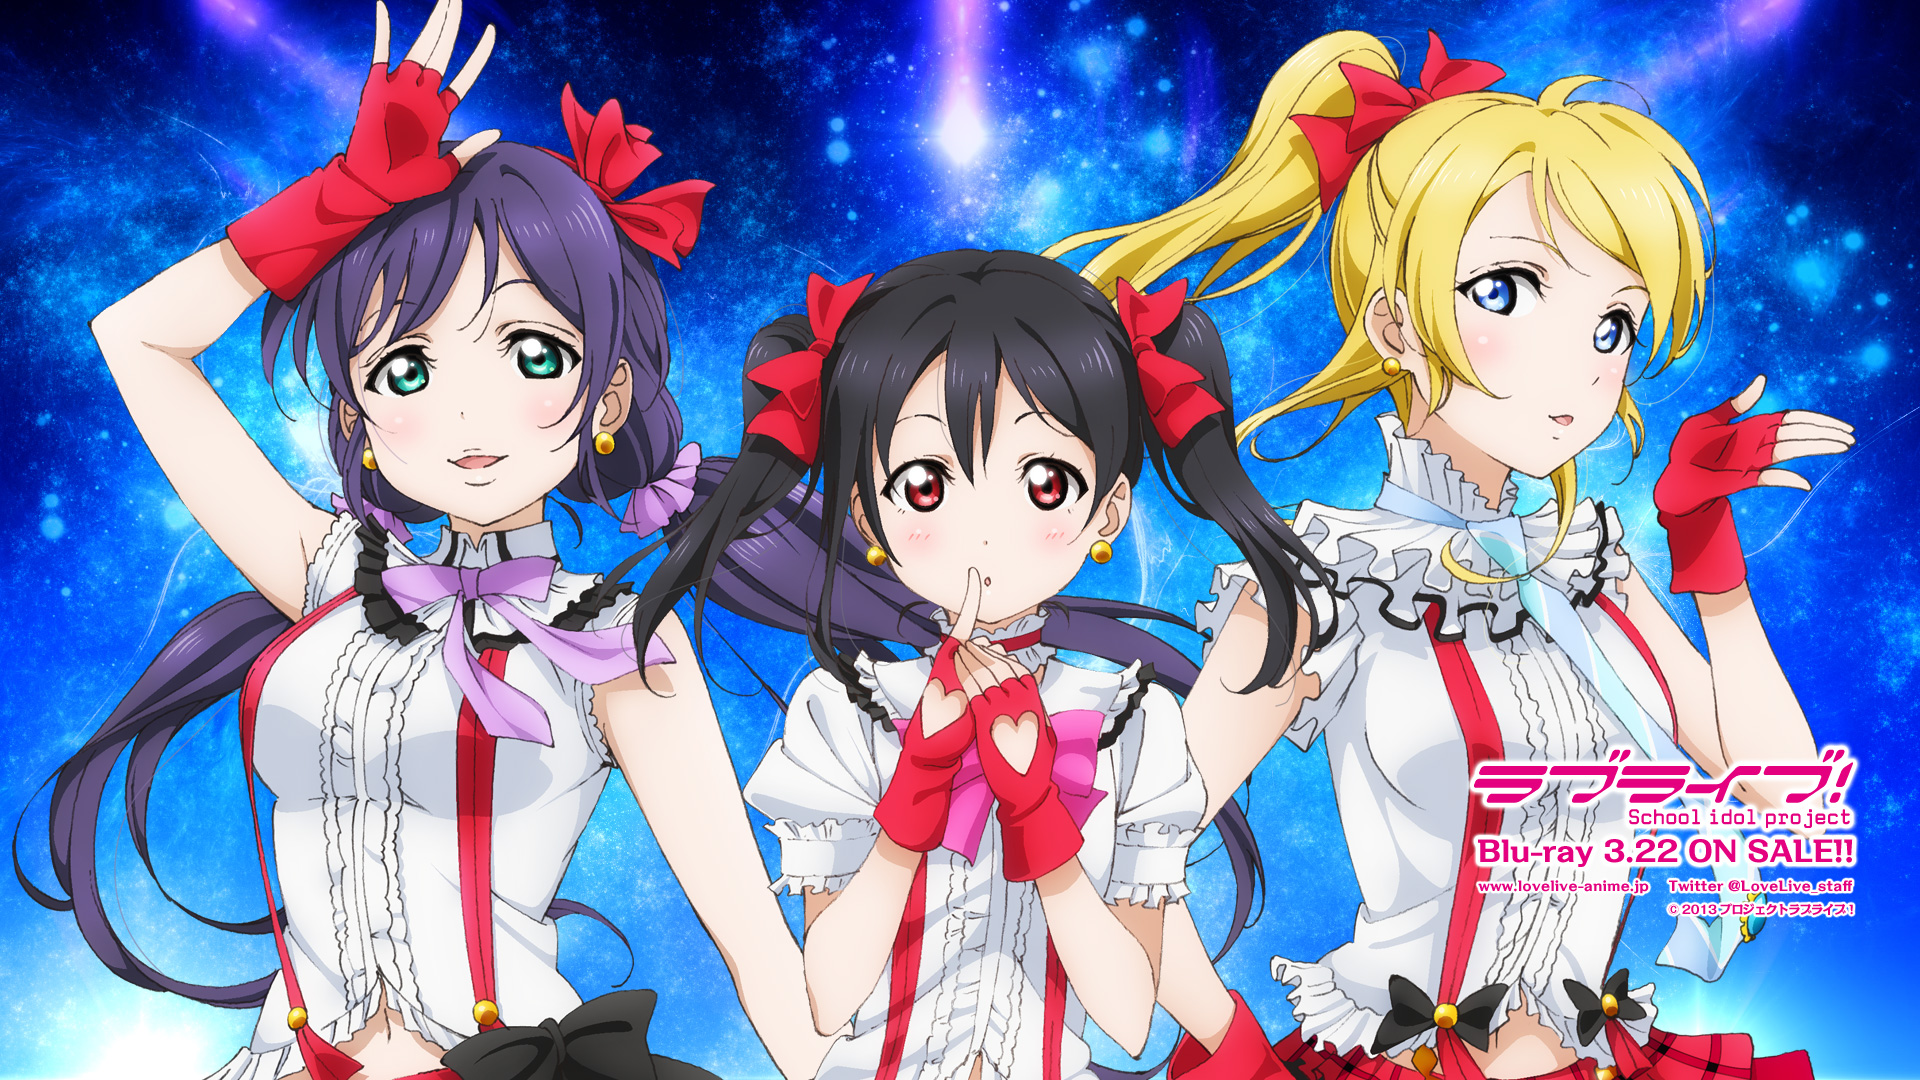 No Love Wallpaper Hd : Love Live! HD Wallpaper #1442325 - Zerochan Anime Image Board